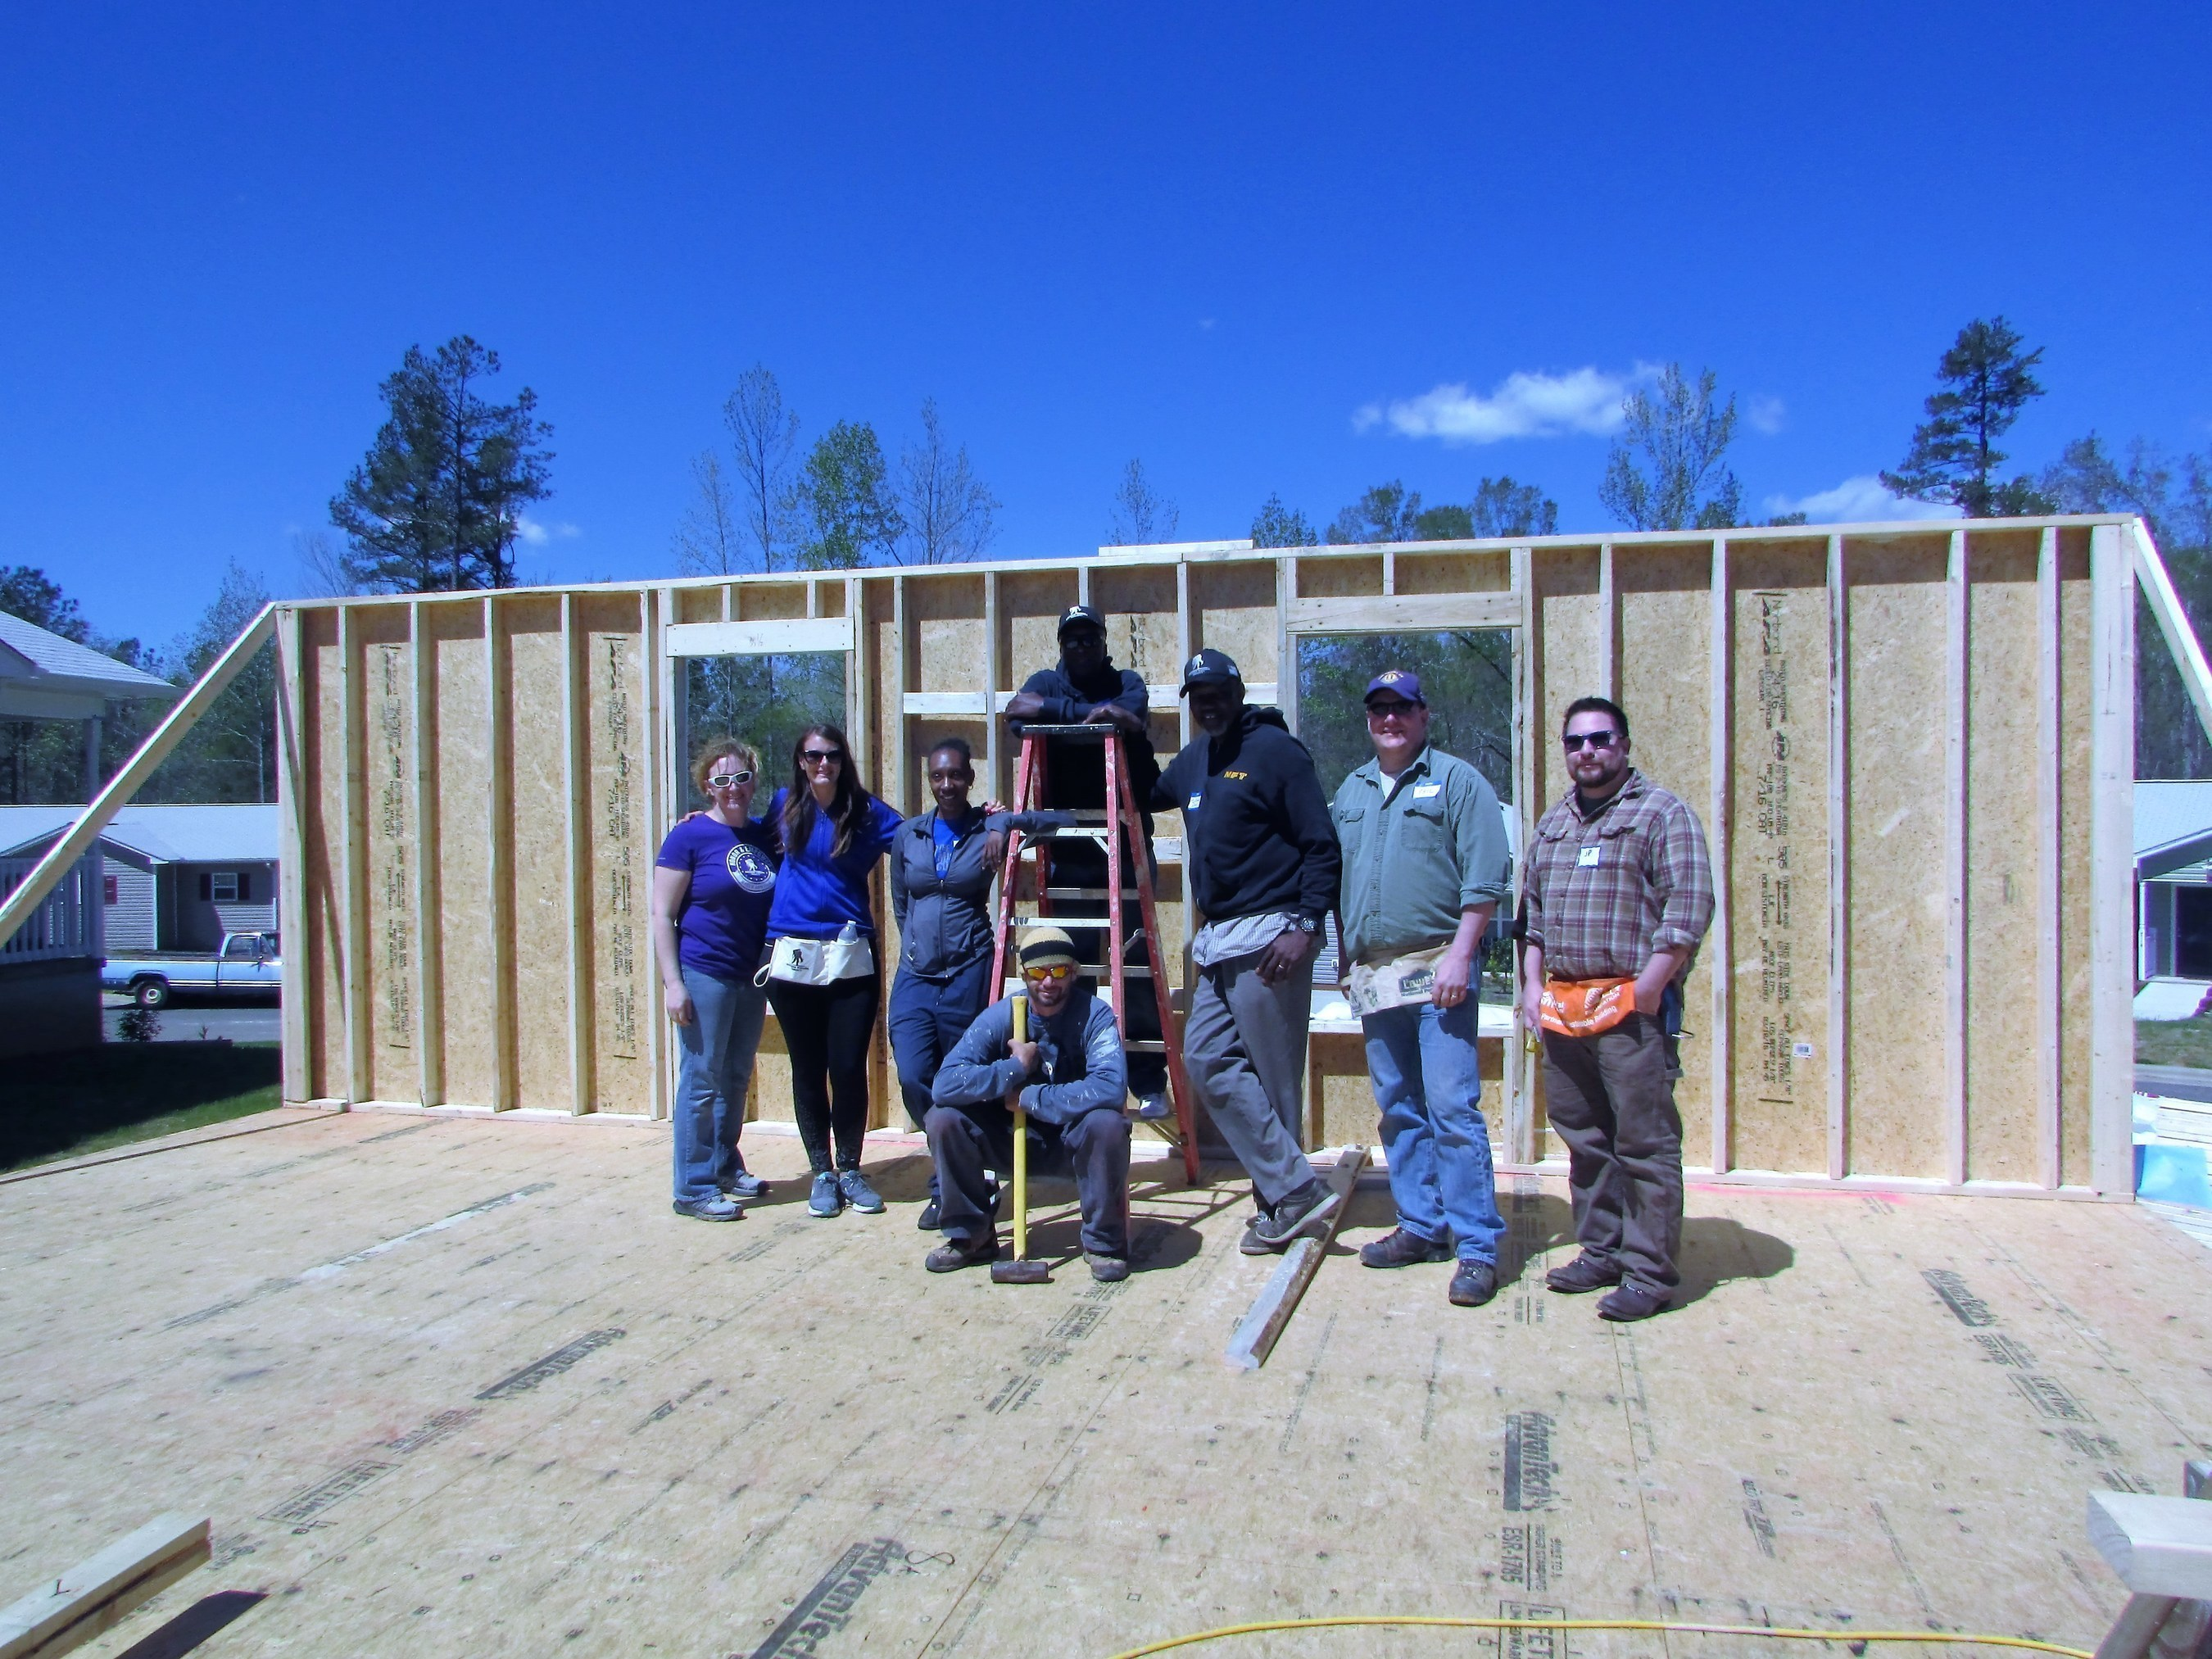 Wounded veterans build a wall during service project.